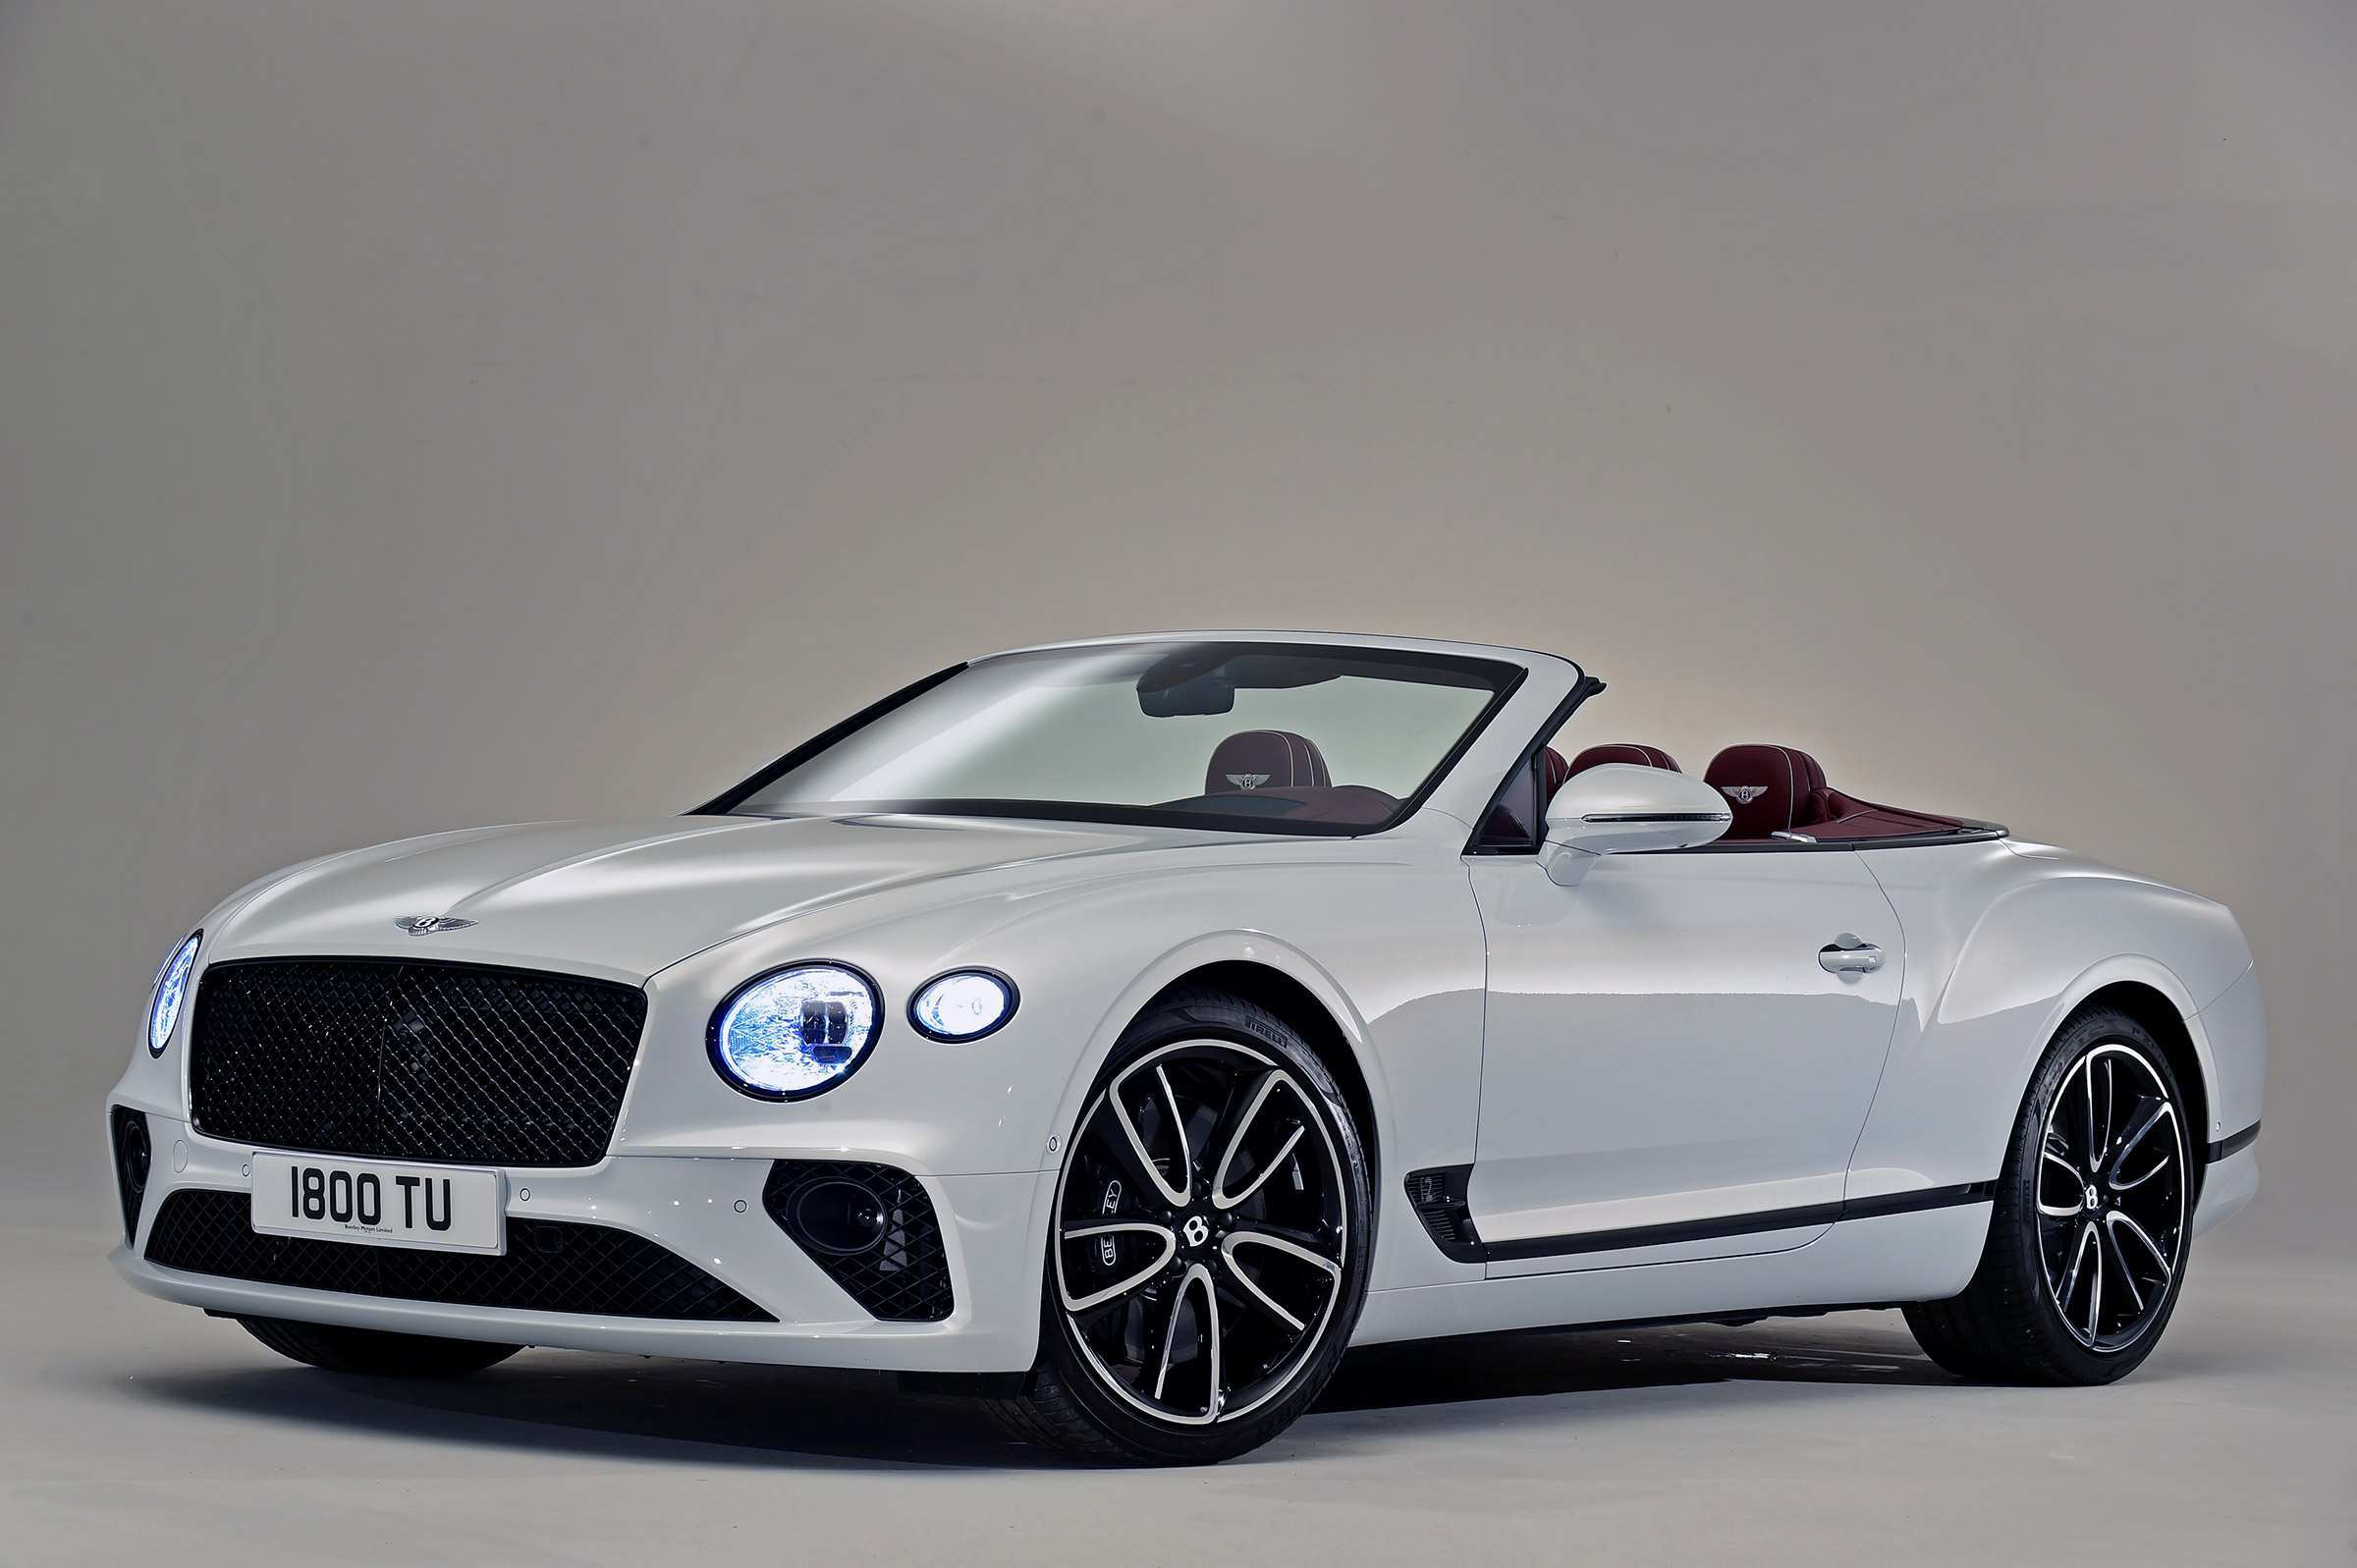 50 Great 2019 Bentley Continental Gt Weight Reviews with 2019 Bentley Continental Gt Weight